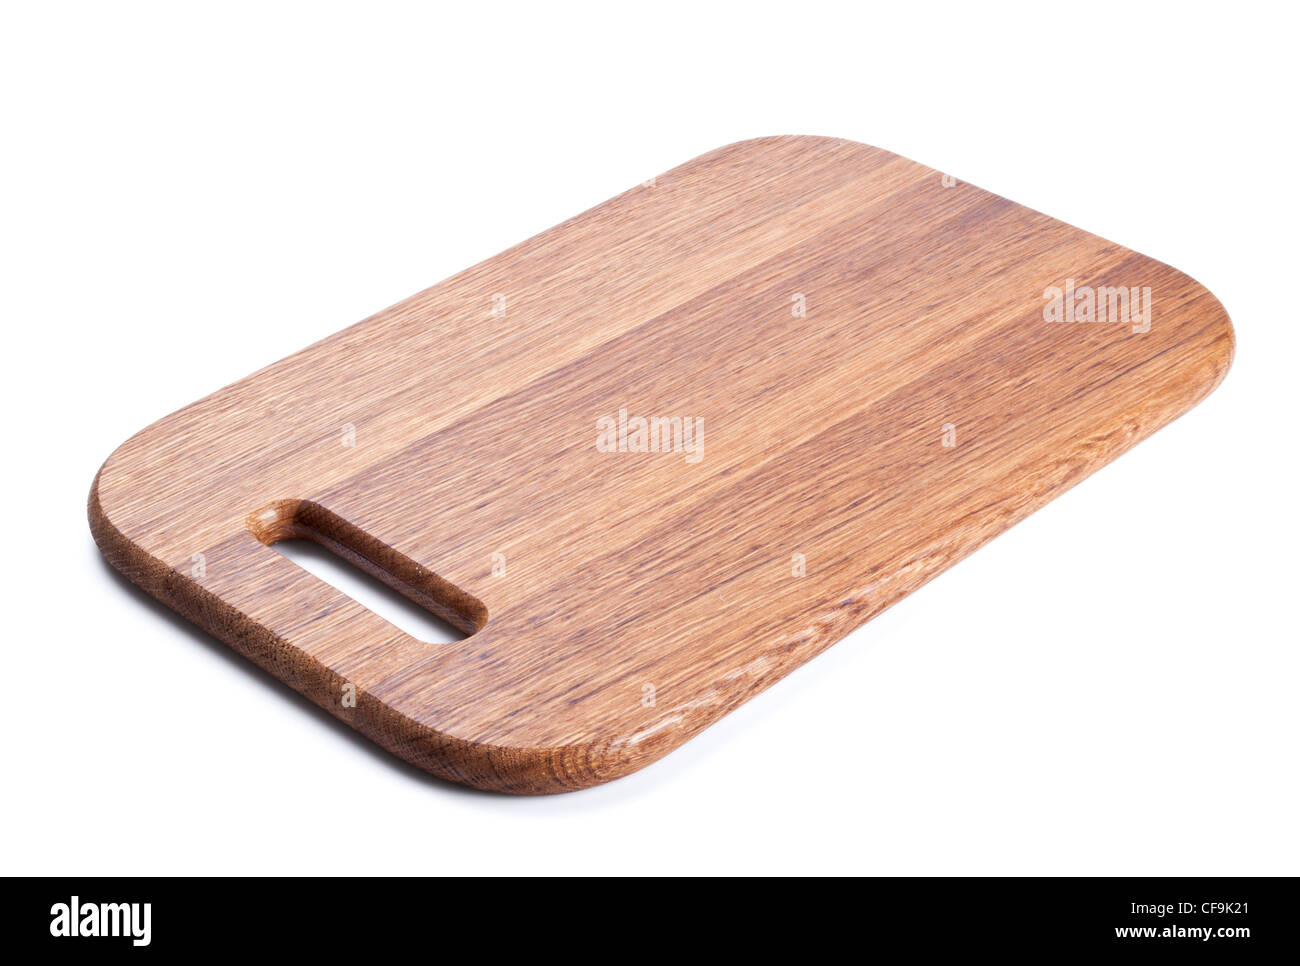 Wooden cutting board isolated on white background - Stock Image